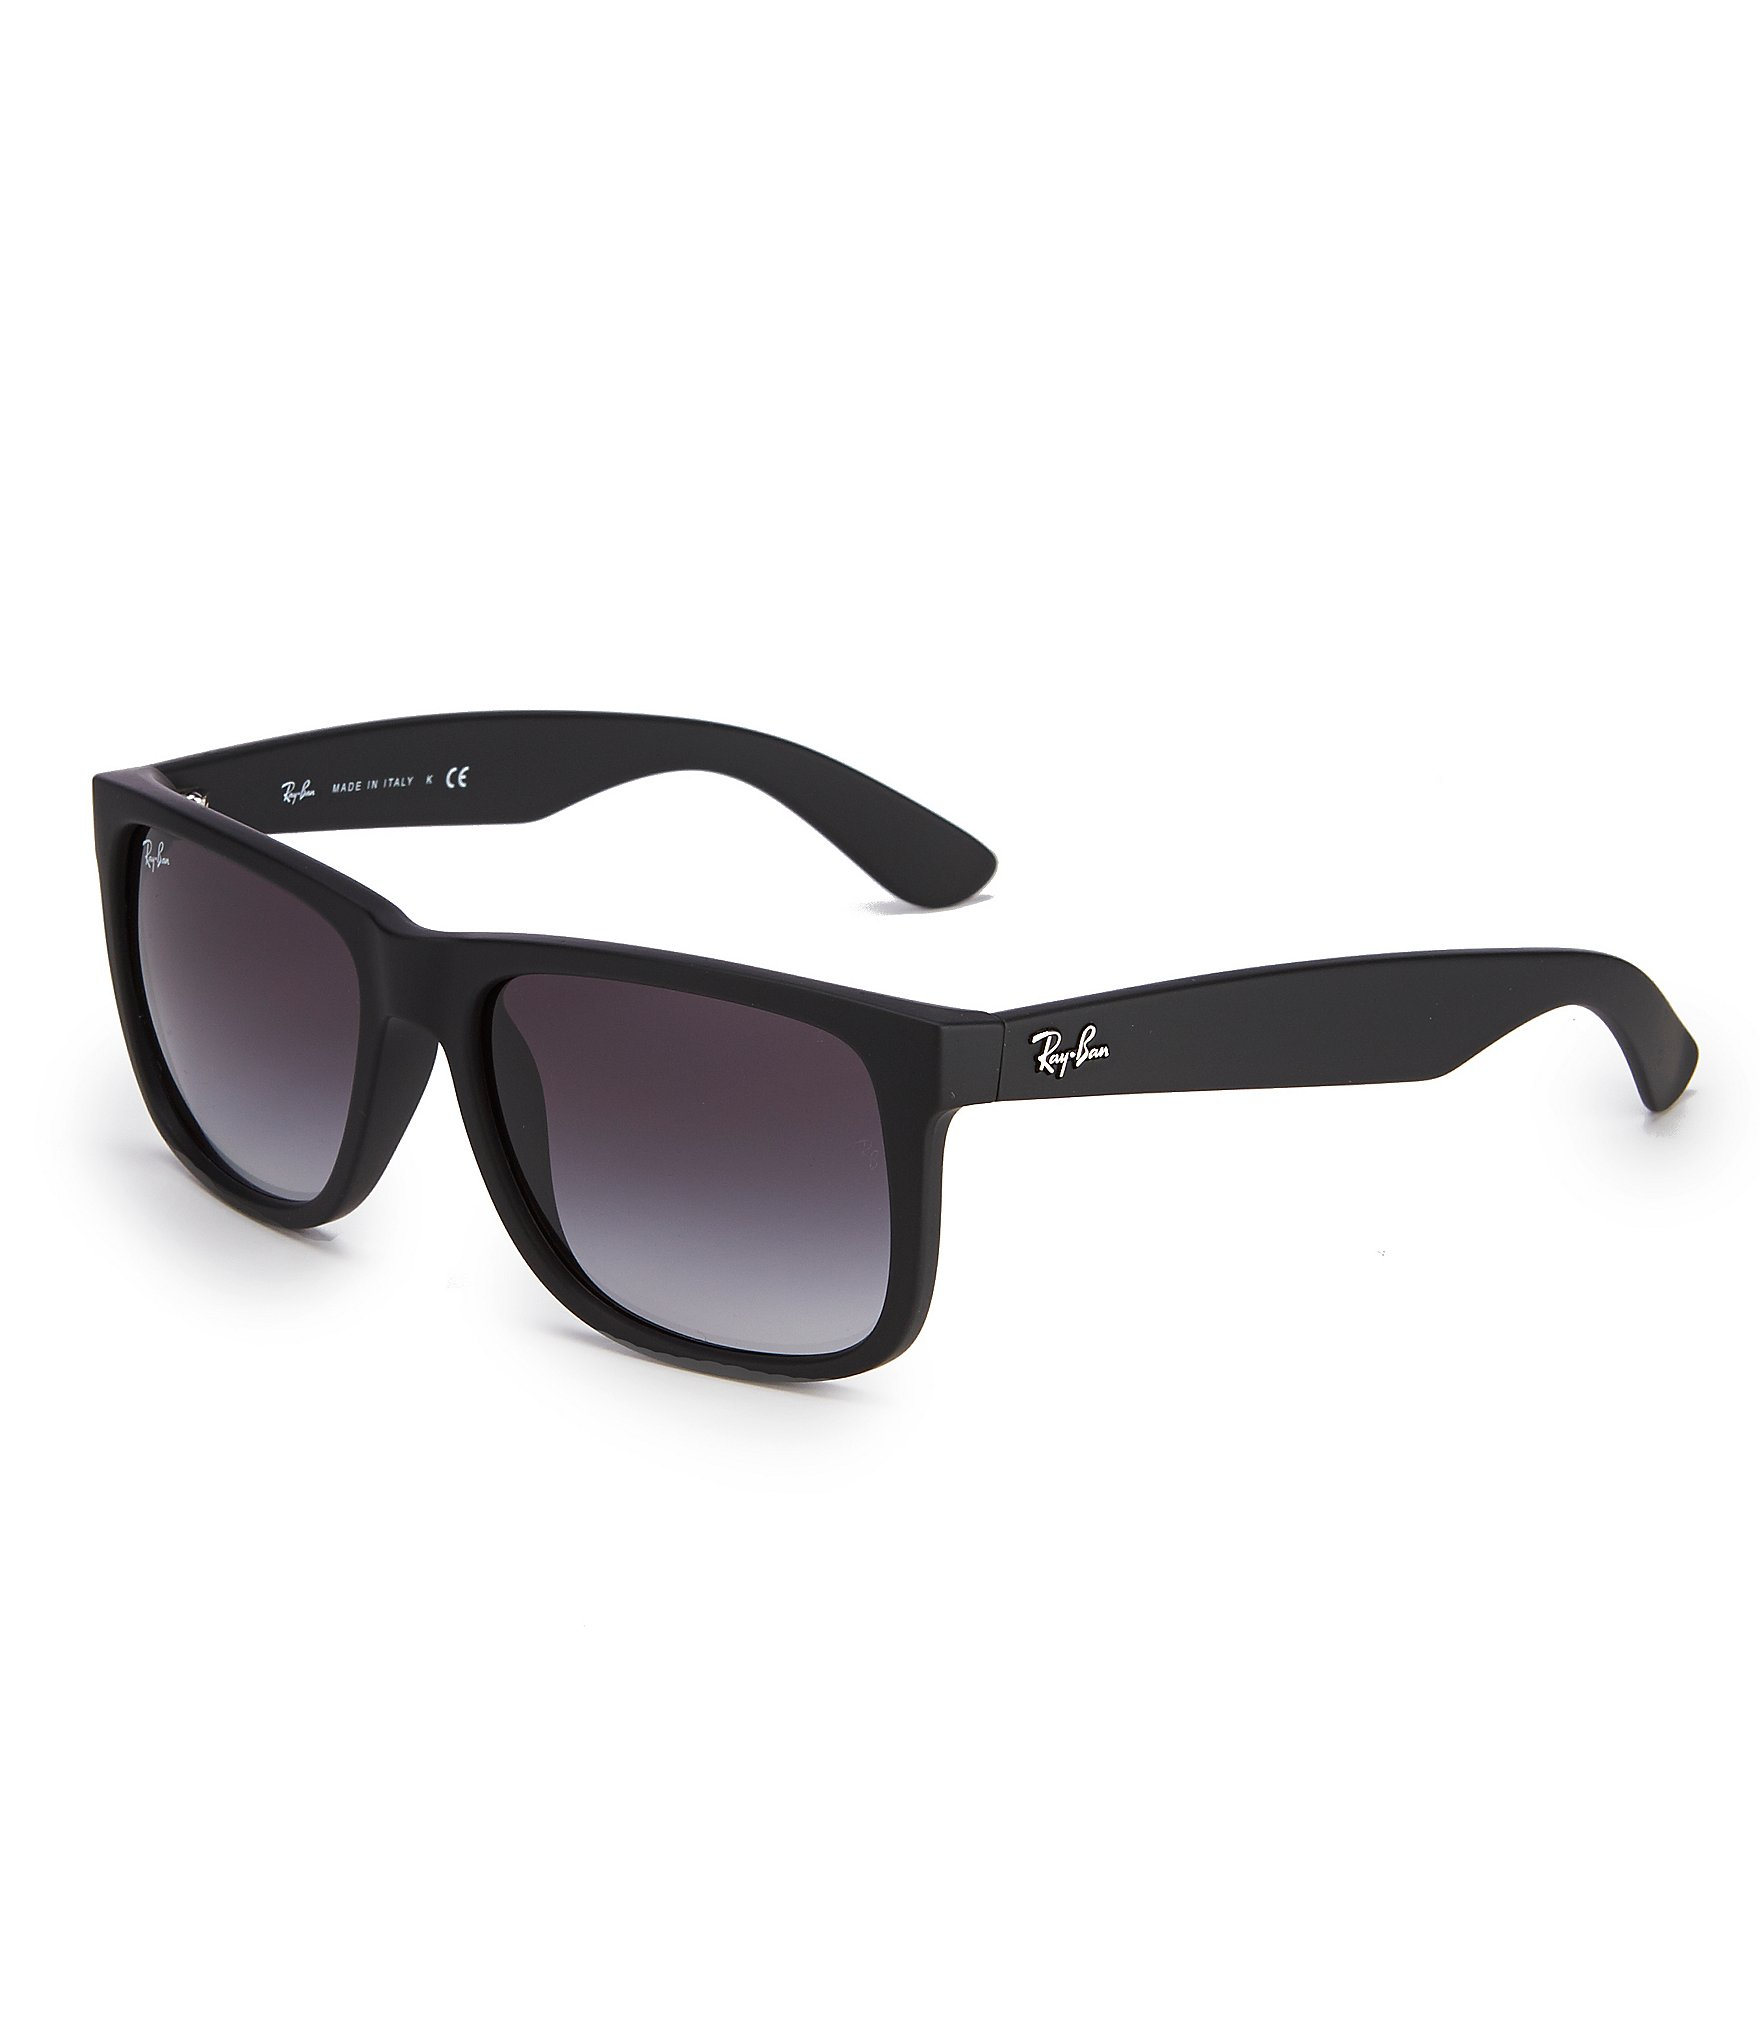 f77825c7685 Ray-Ban Square Boyfriend Sunglasses